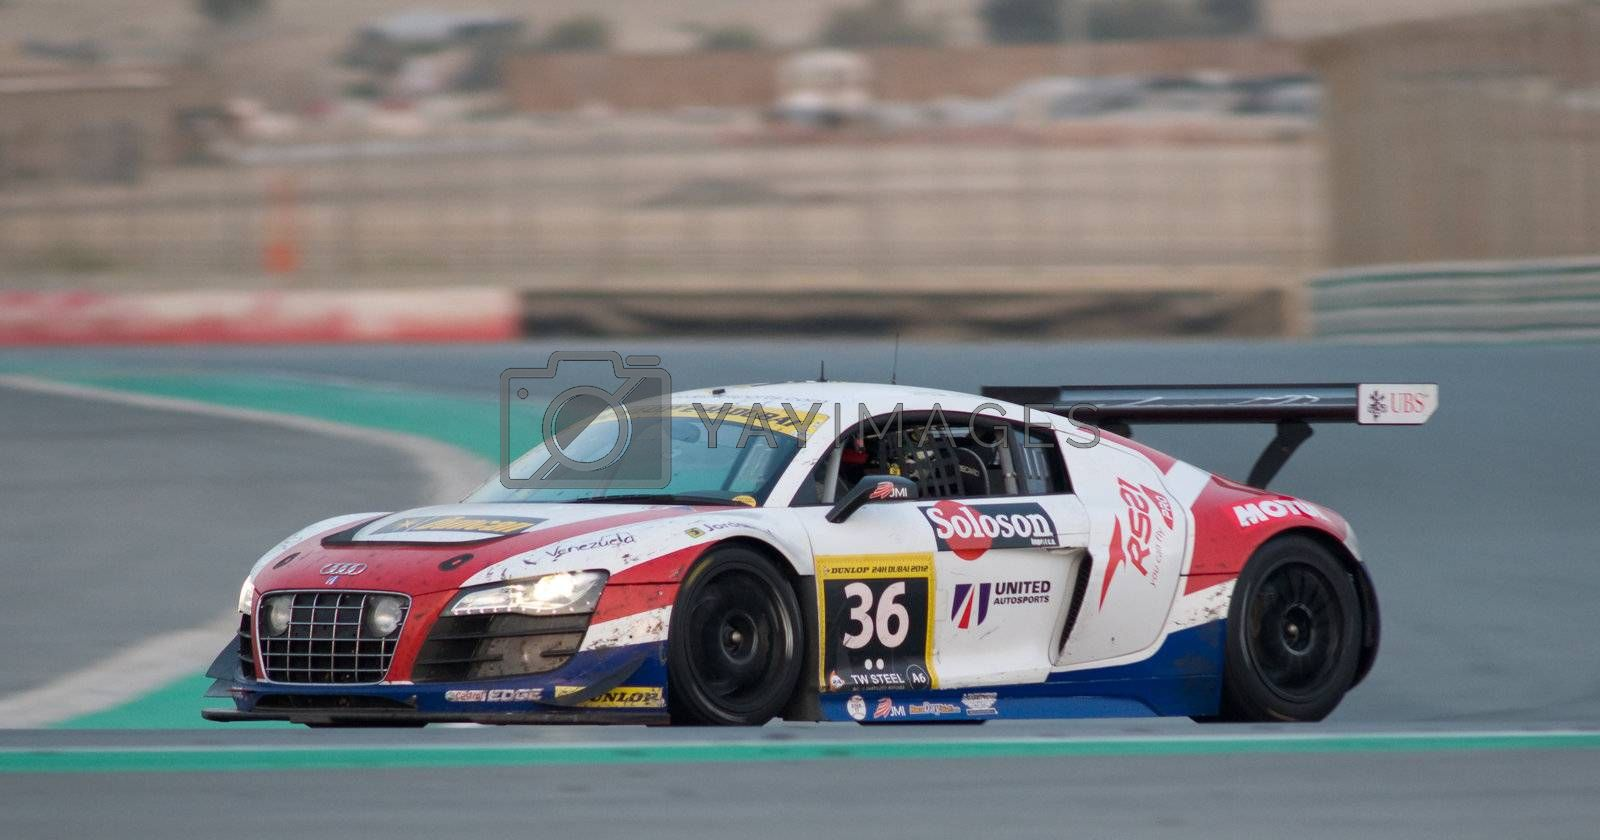 DUBAI - JANUARY 14: Car 36, an Audi GT3 LMS, during the morning hours of the 2012 Dunlop 24 Hour Race at Dubai Autodrome on January 14, 2012.